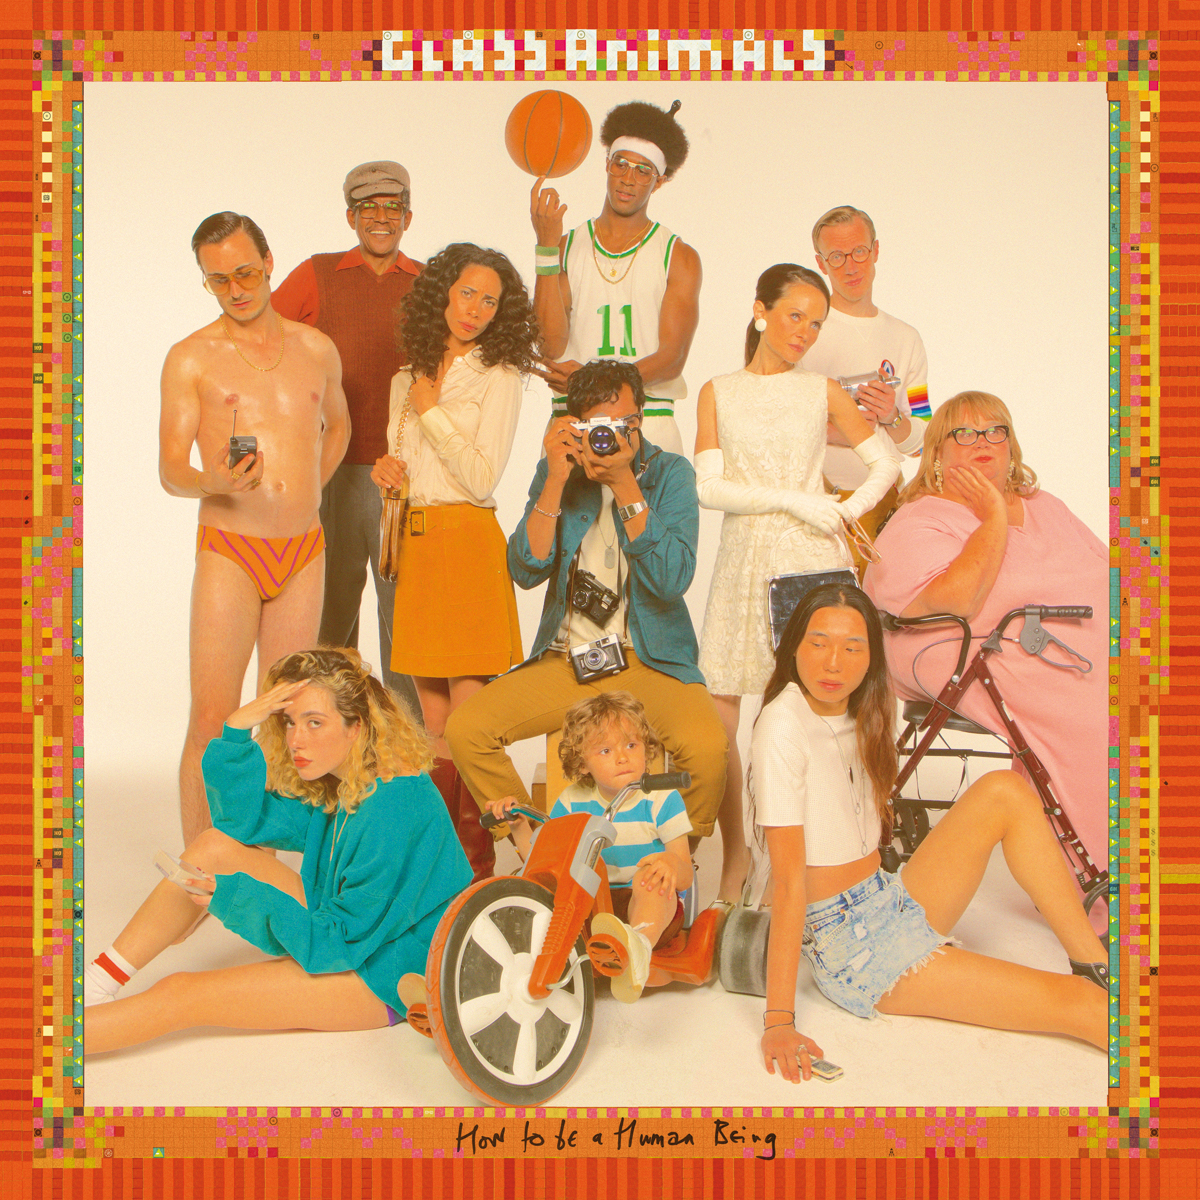 glassanimals-how-to-be-a-human-being